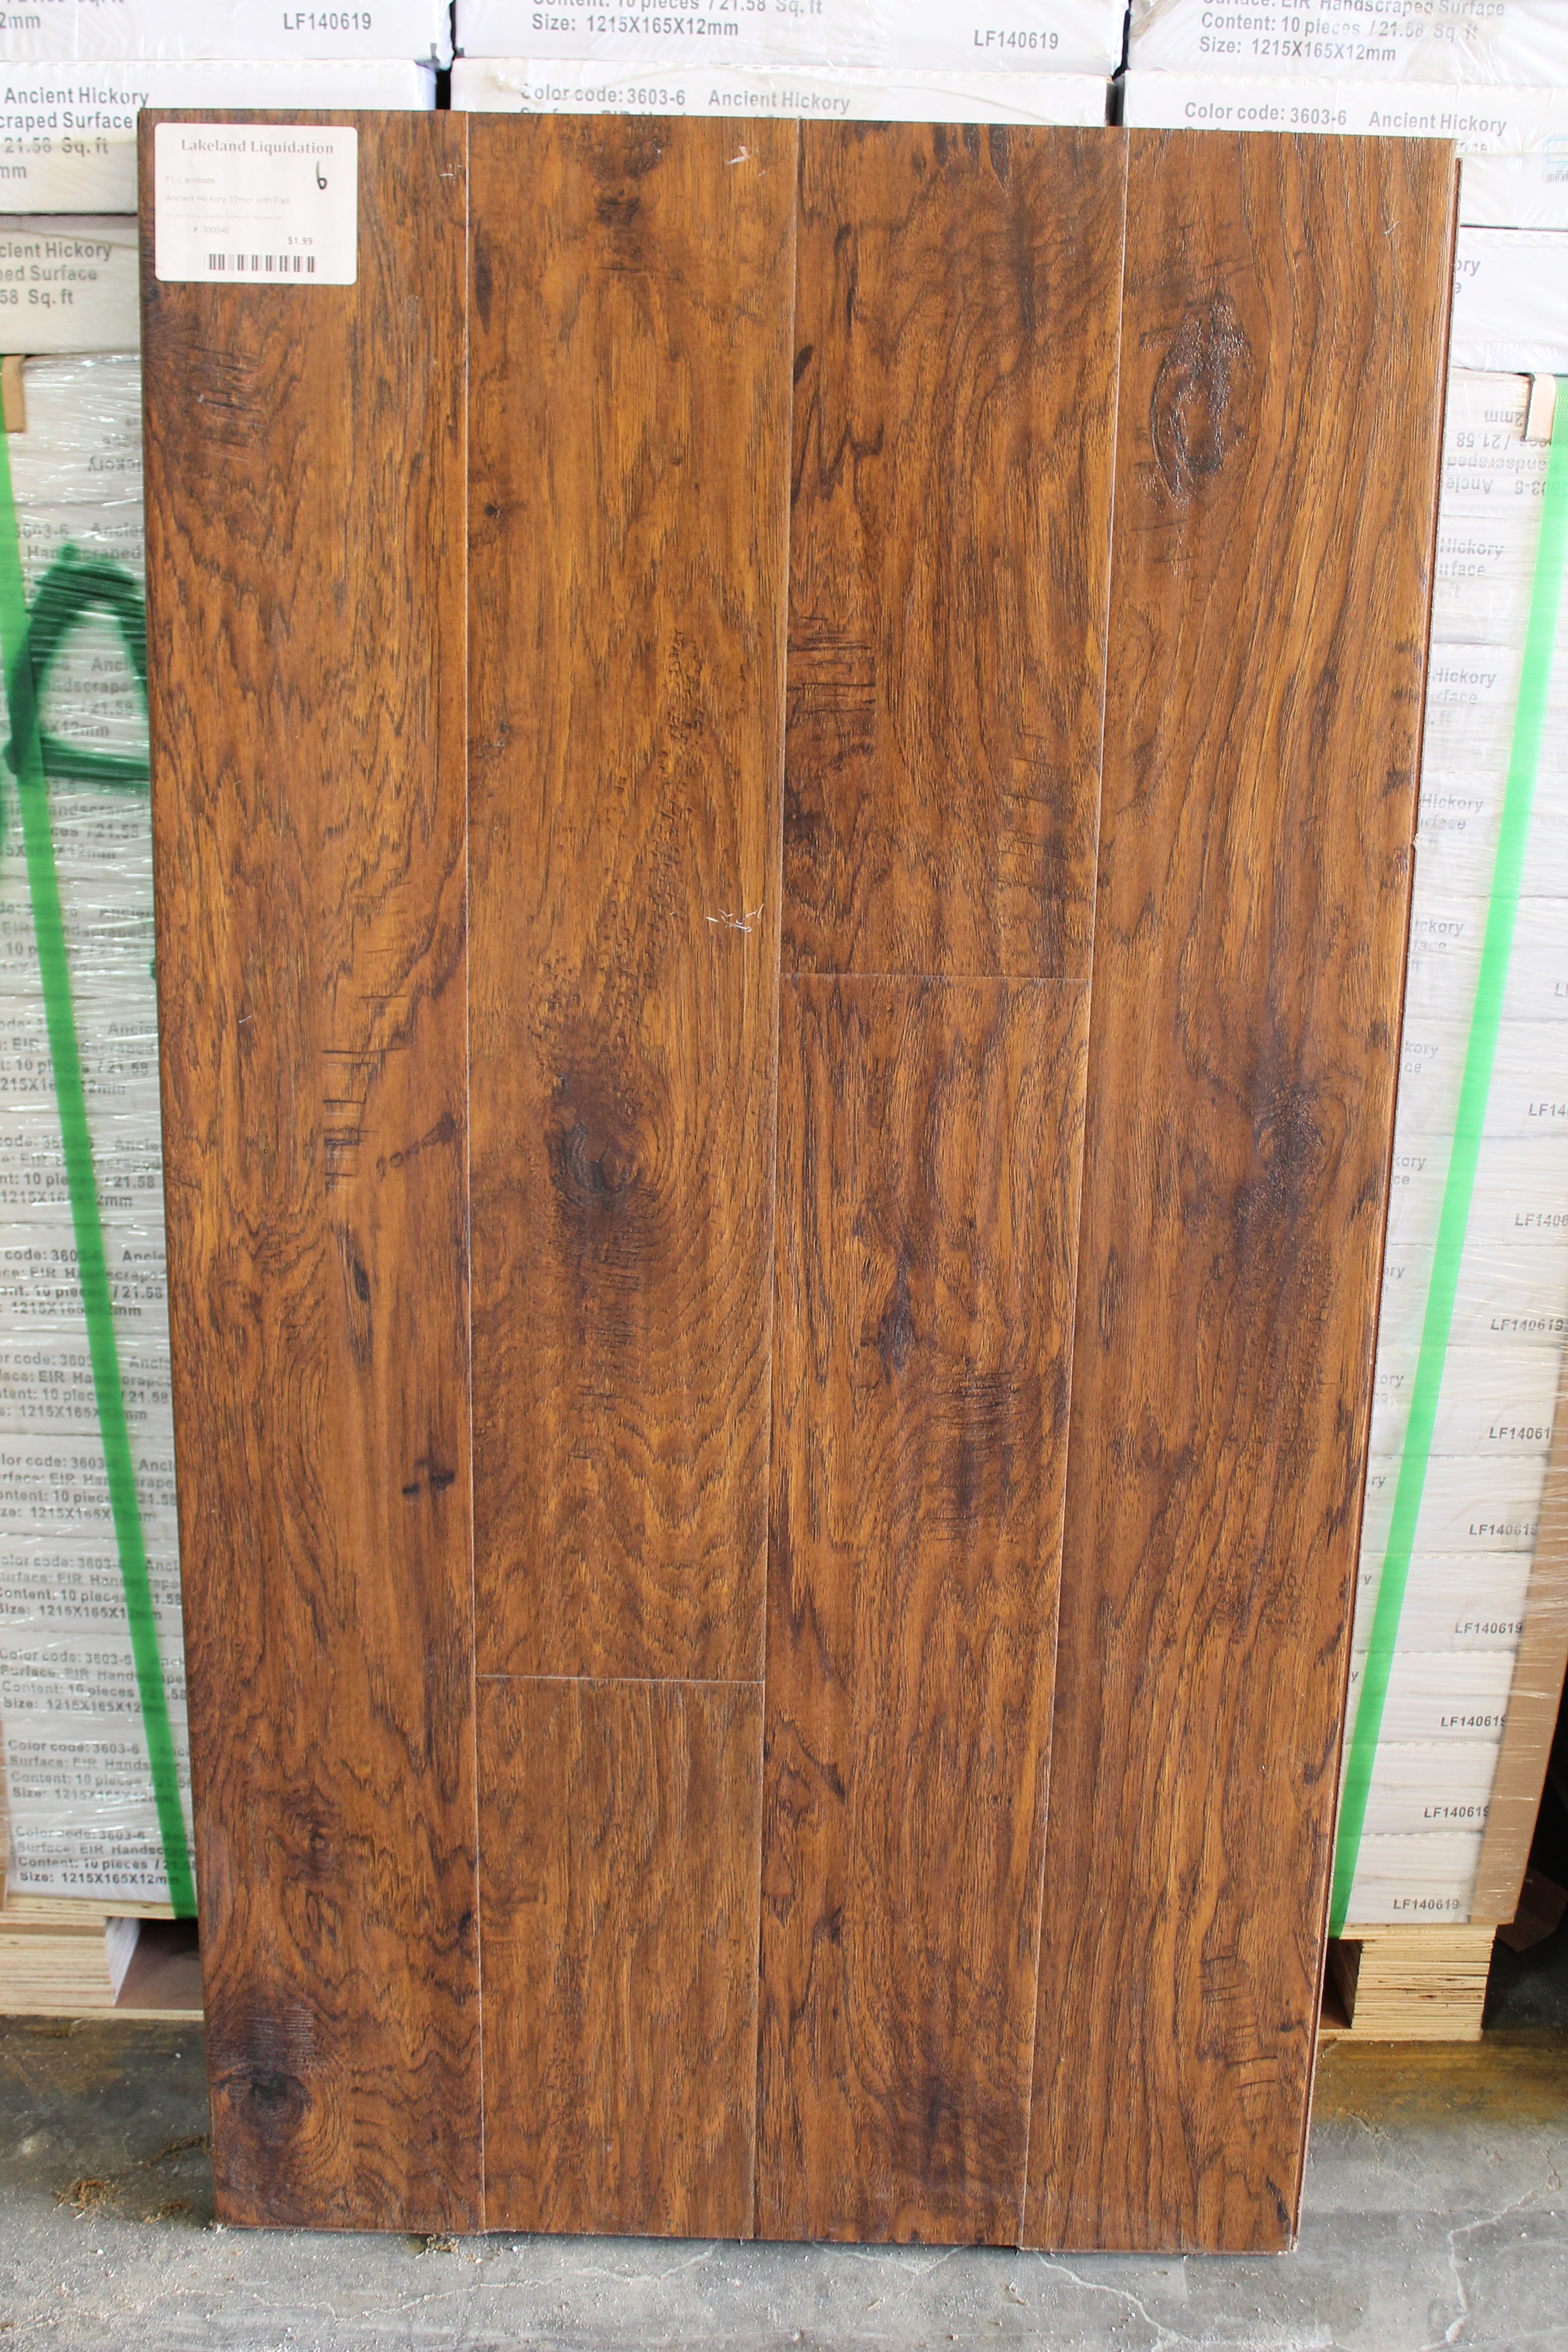 Ancient Hickory Laminate 12mm with the pad attached 300040